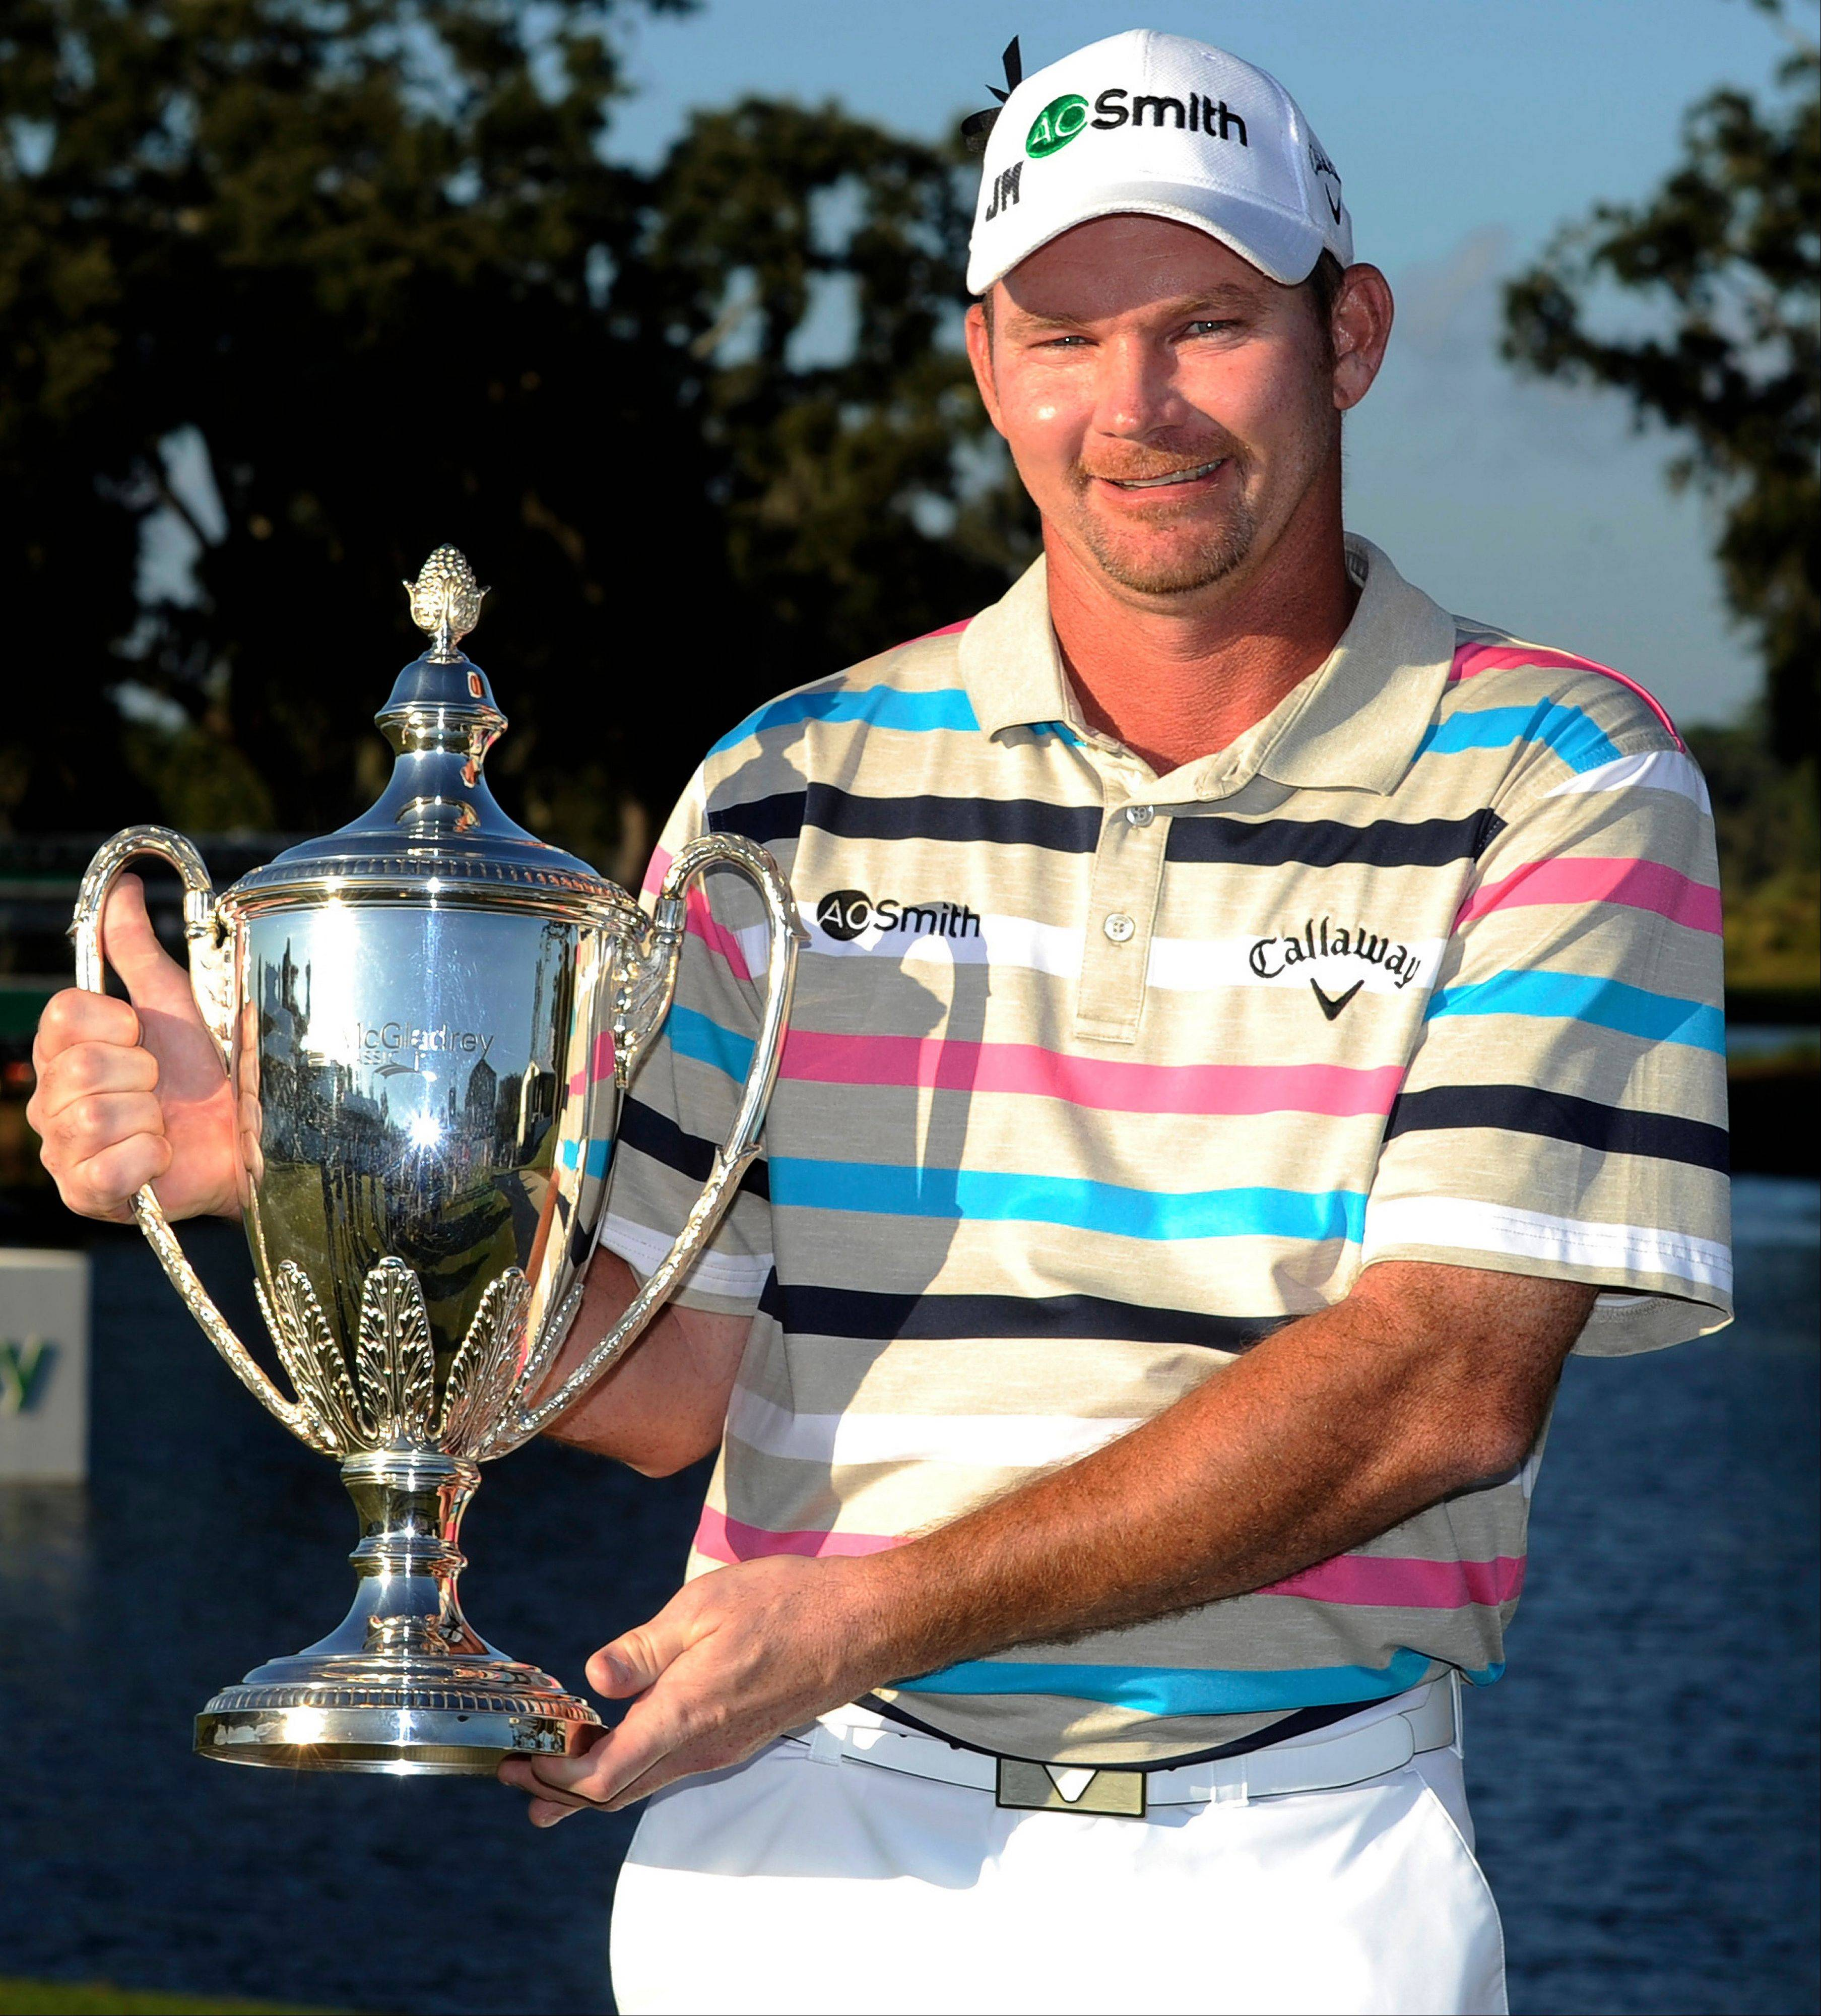 Tommy Gainey holds the trophy after winning the McGladrey Classic PGA Tour golf tournament Sunday in St. Simons Island, Ga.